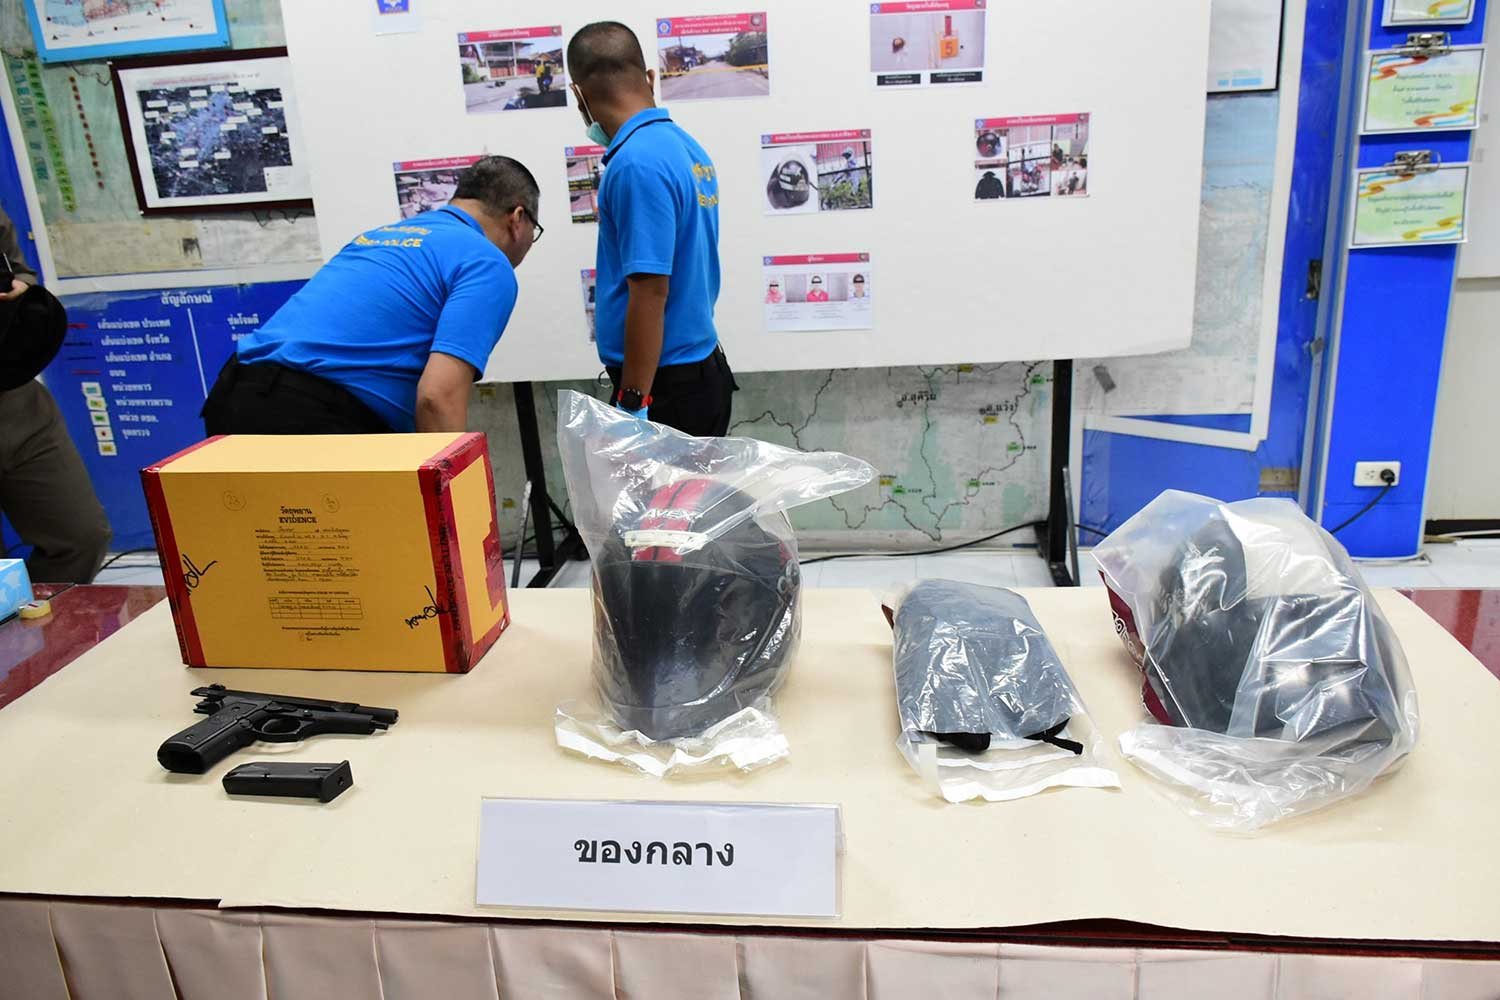 Crash helmets, a pistol and other items used in the attack on a senior forestry official in Muang district of Yala on Dec 5 are shown during a  briefing on the arrest of three suspects, including a 14-year-old, the accused gunman. (Photo from @Krpoliceyala Facebook page)